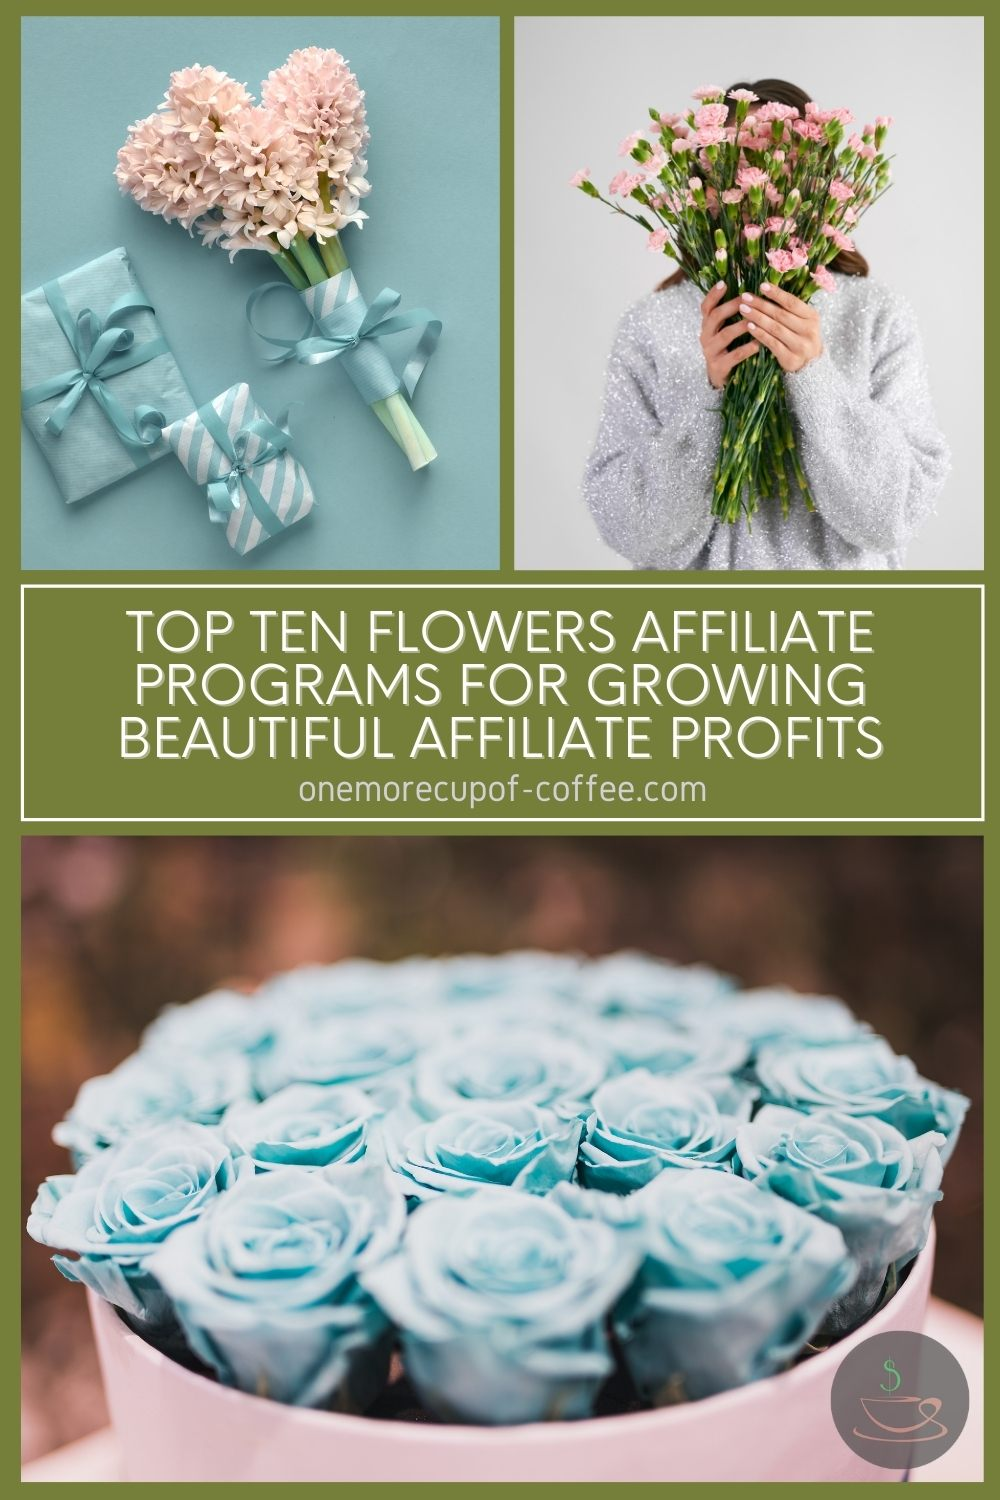 """photo collage of flower bouquets, with text overlay in green banner """"Top Ten Flowers Affiliate Programs For Growing Beautiful Affiliate Profits"""""""